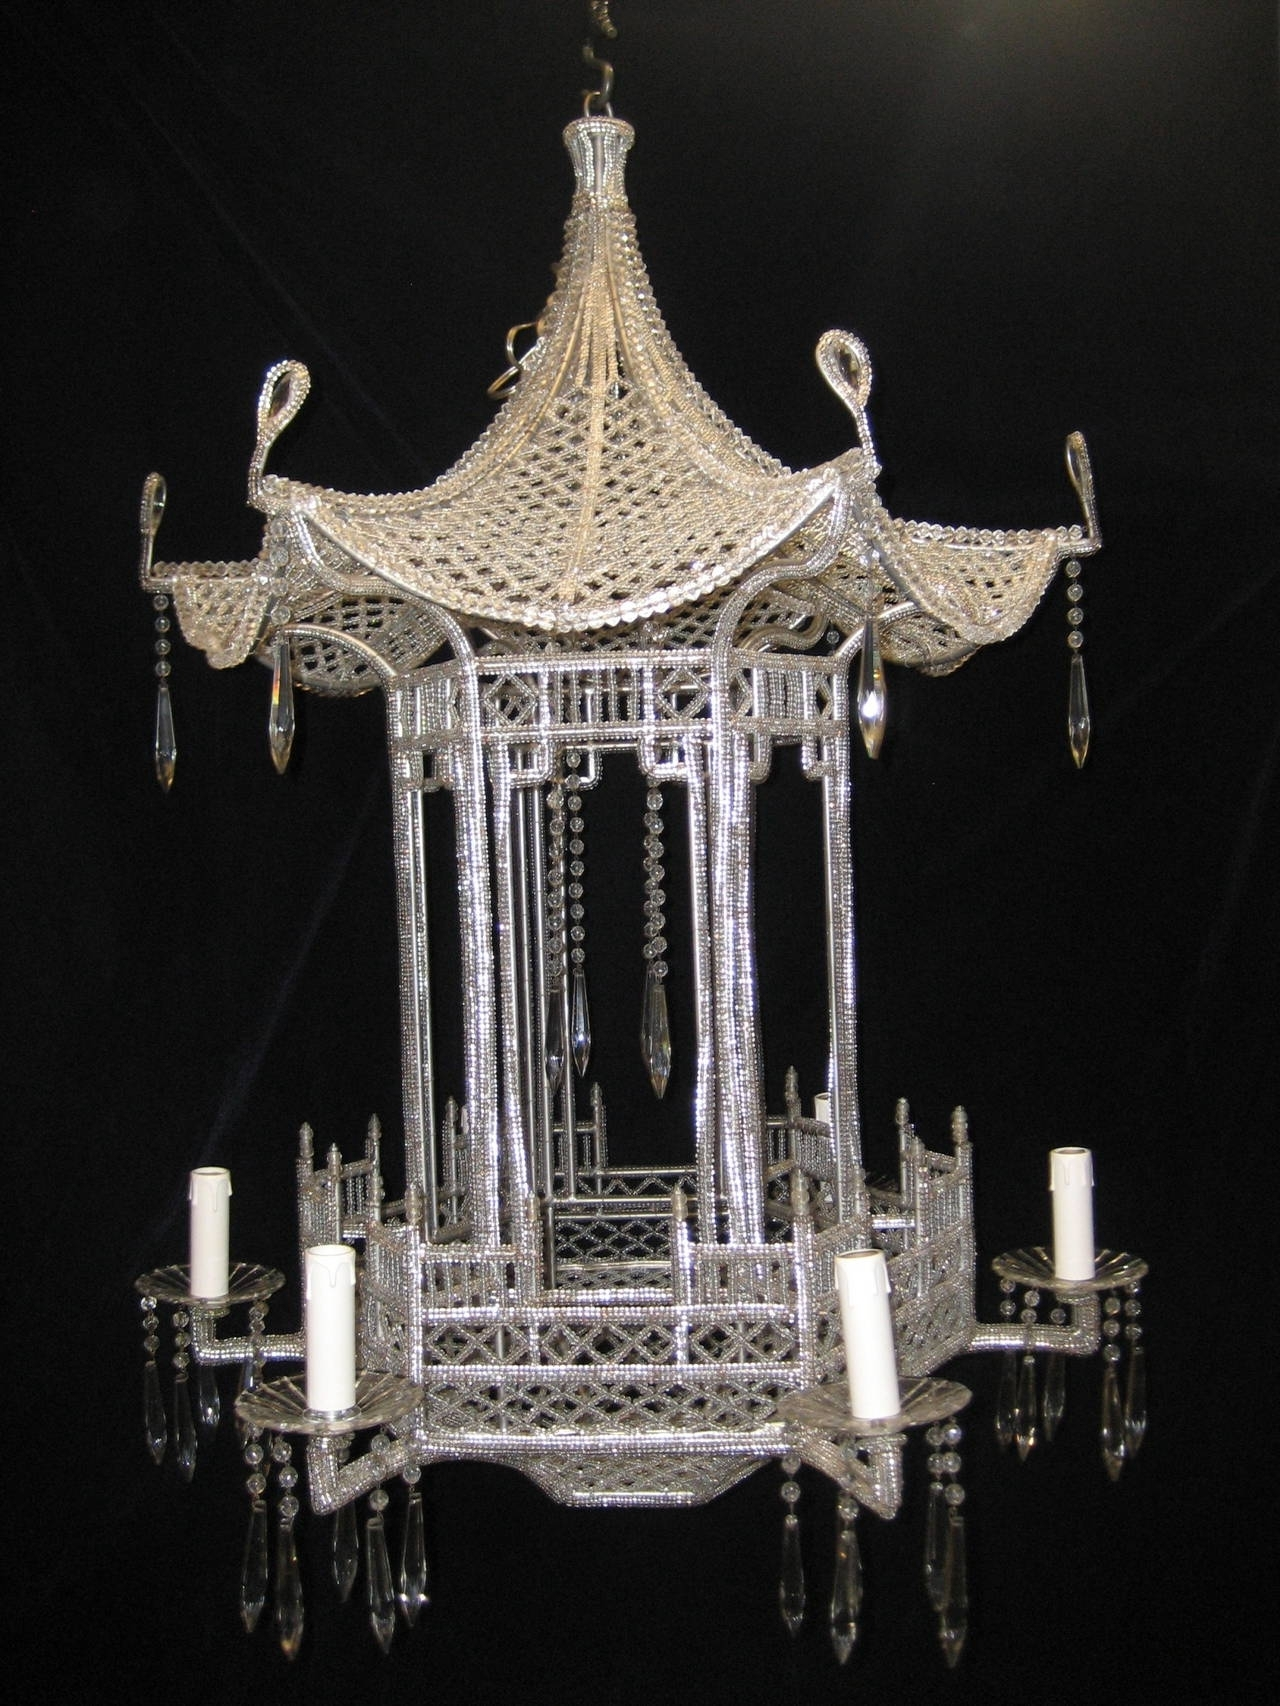 2018 Pair Of Italian Chinoiserie Pagoda Form Beaded Glass And Crystal Within Chinoiserie Chandeliers (View 2 of 15)